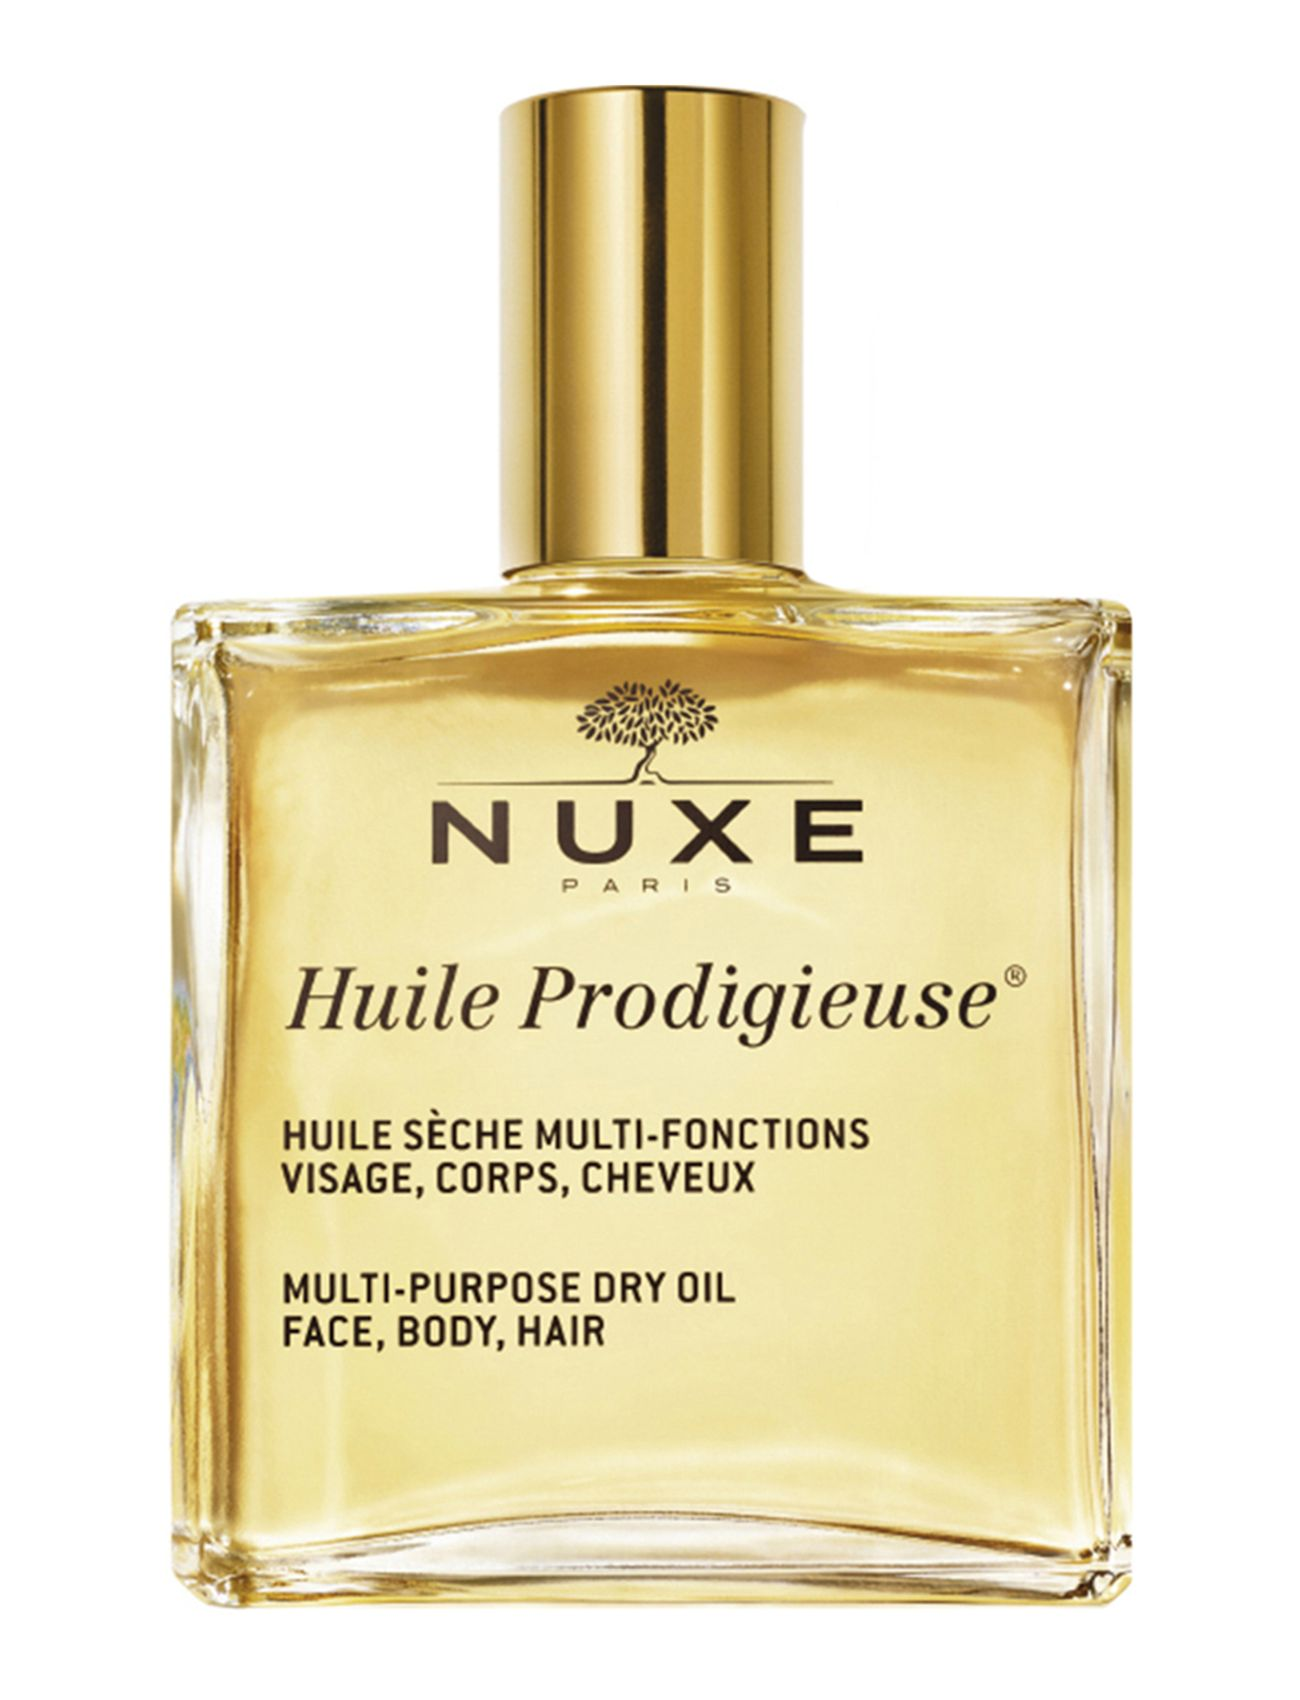 NUXE HUILE PRODIGIEUSE DRY OIL 100 ML - CLEAR